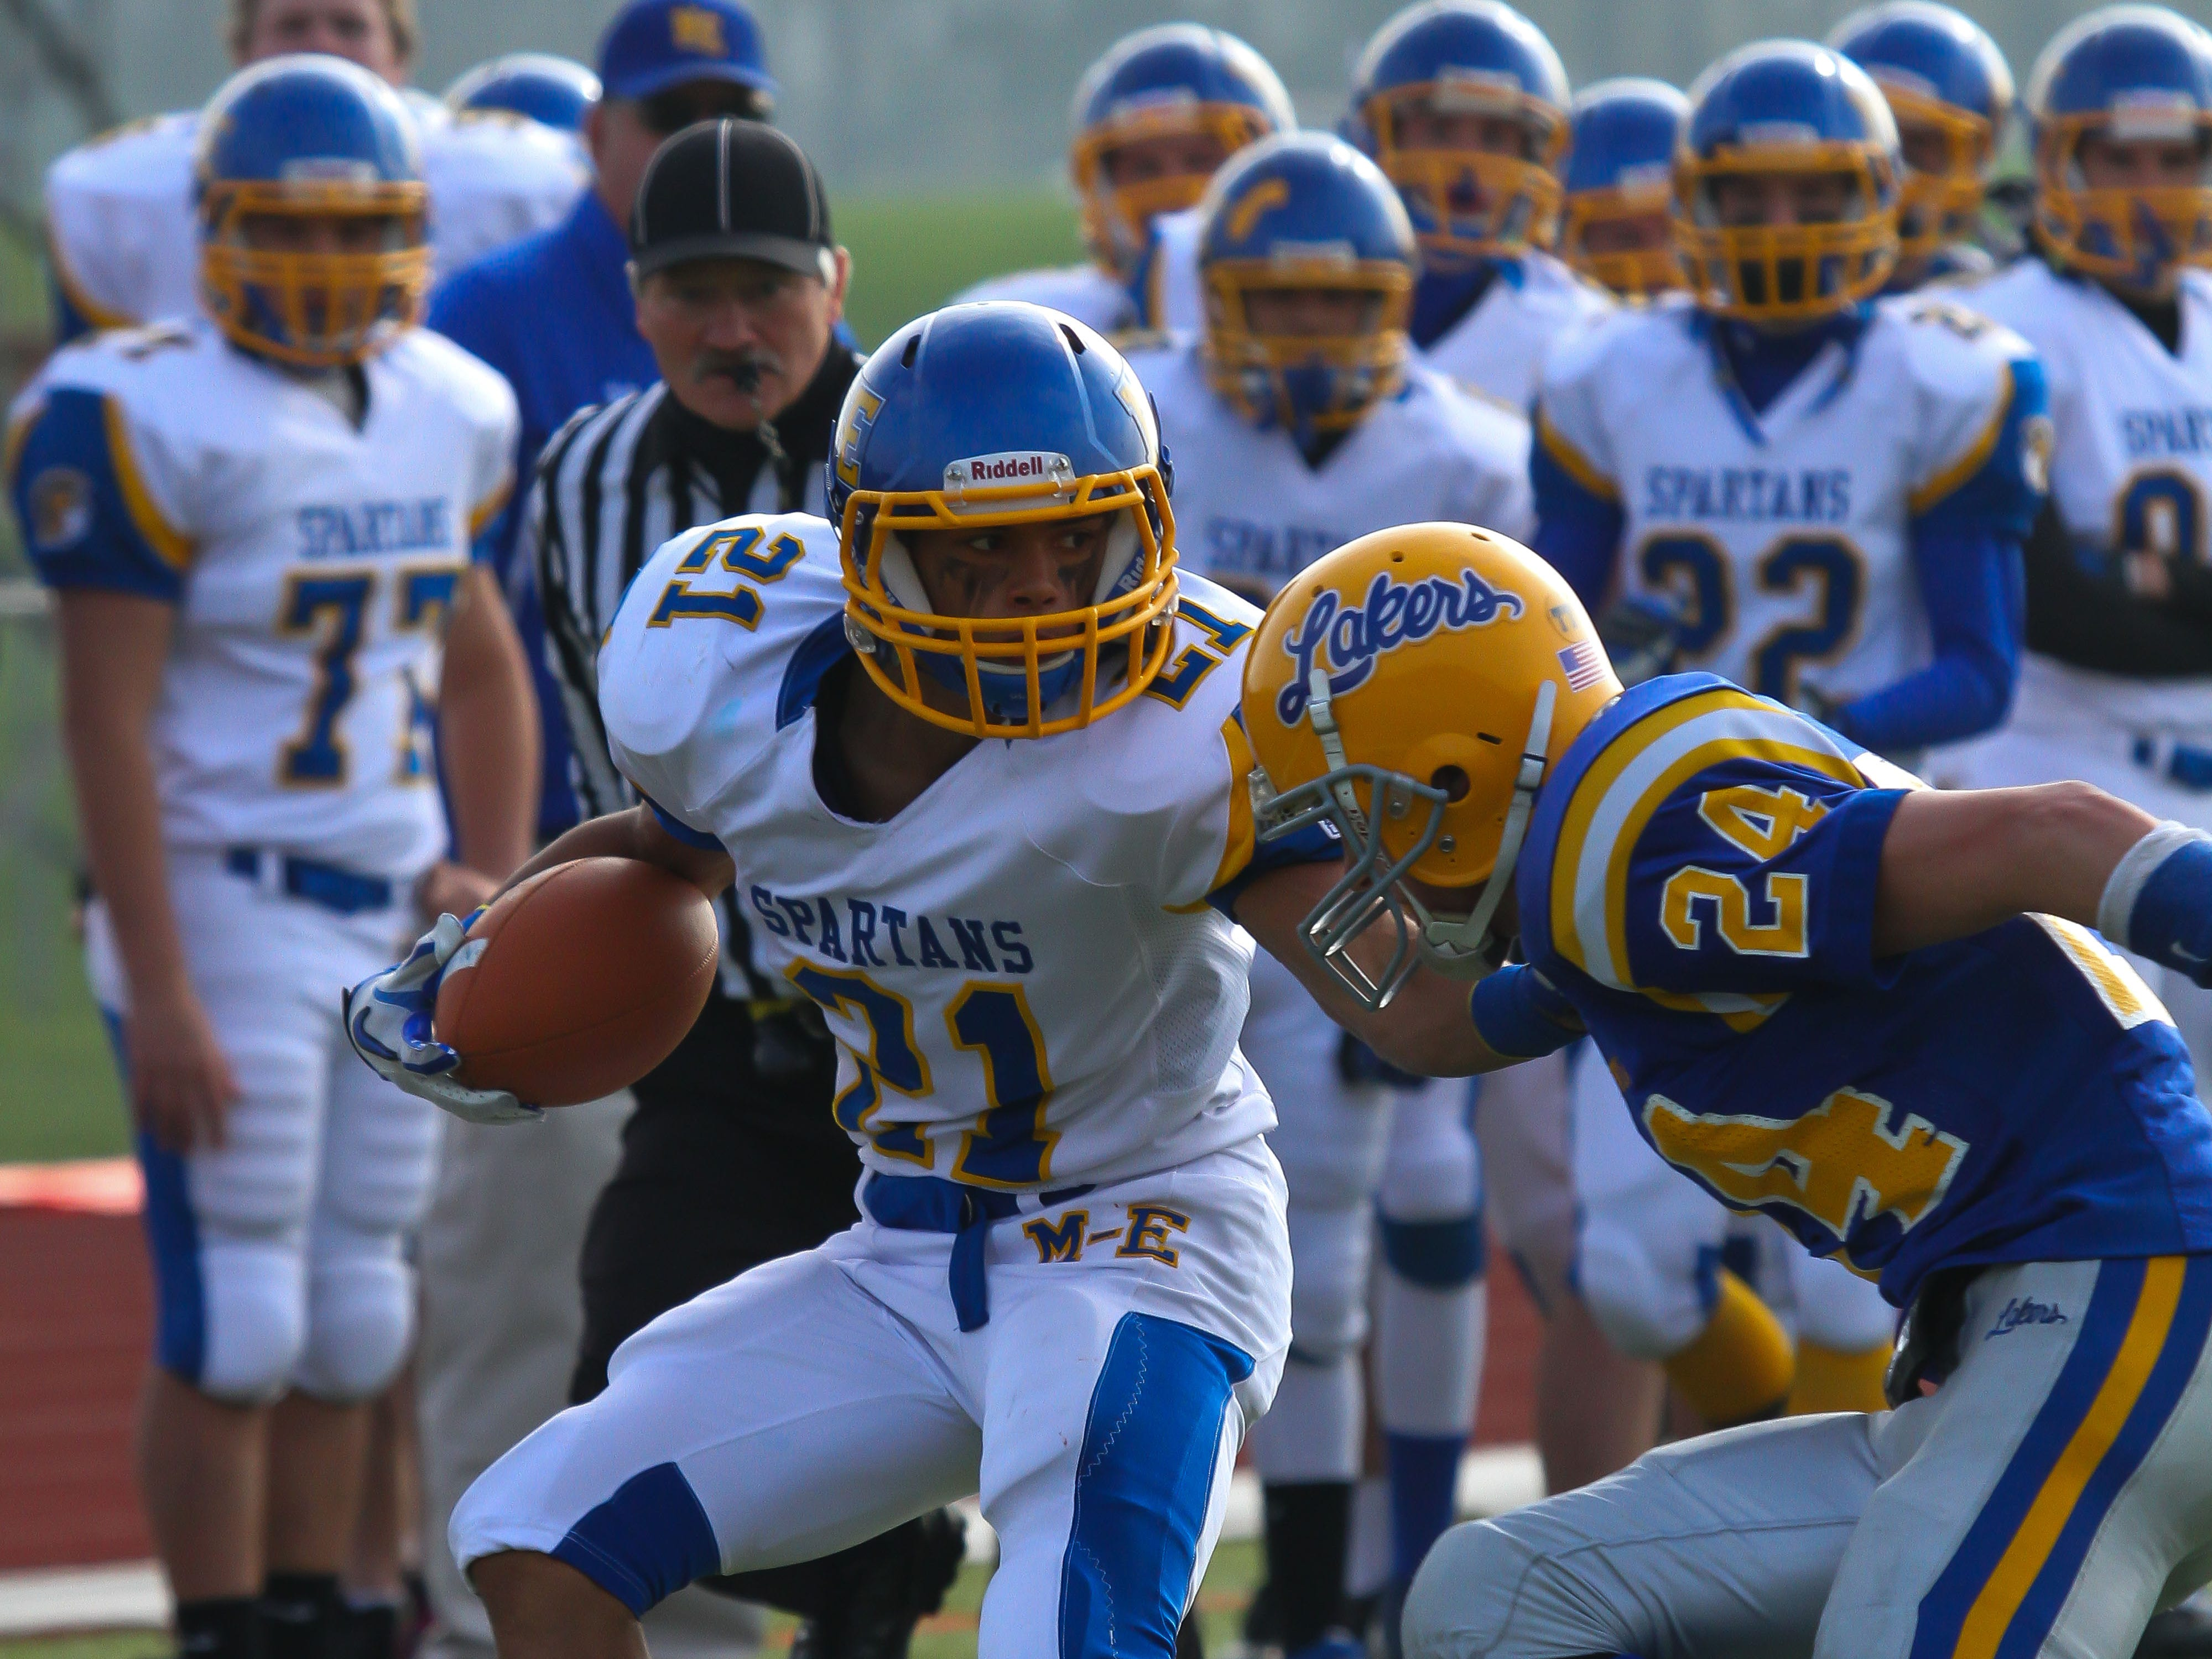 Maine-Endwell's Luis Uceta is run out of bounds by Cazenovia's Joe Colligan on in 2012 at East Syracuse-Minoa High School.